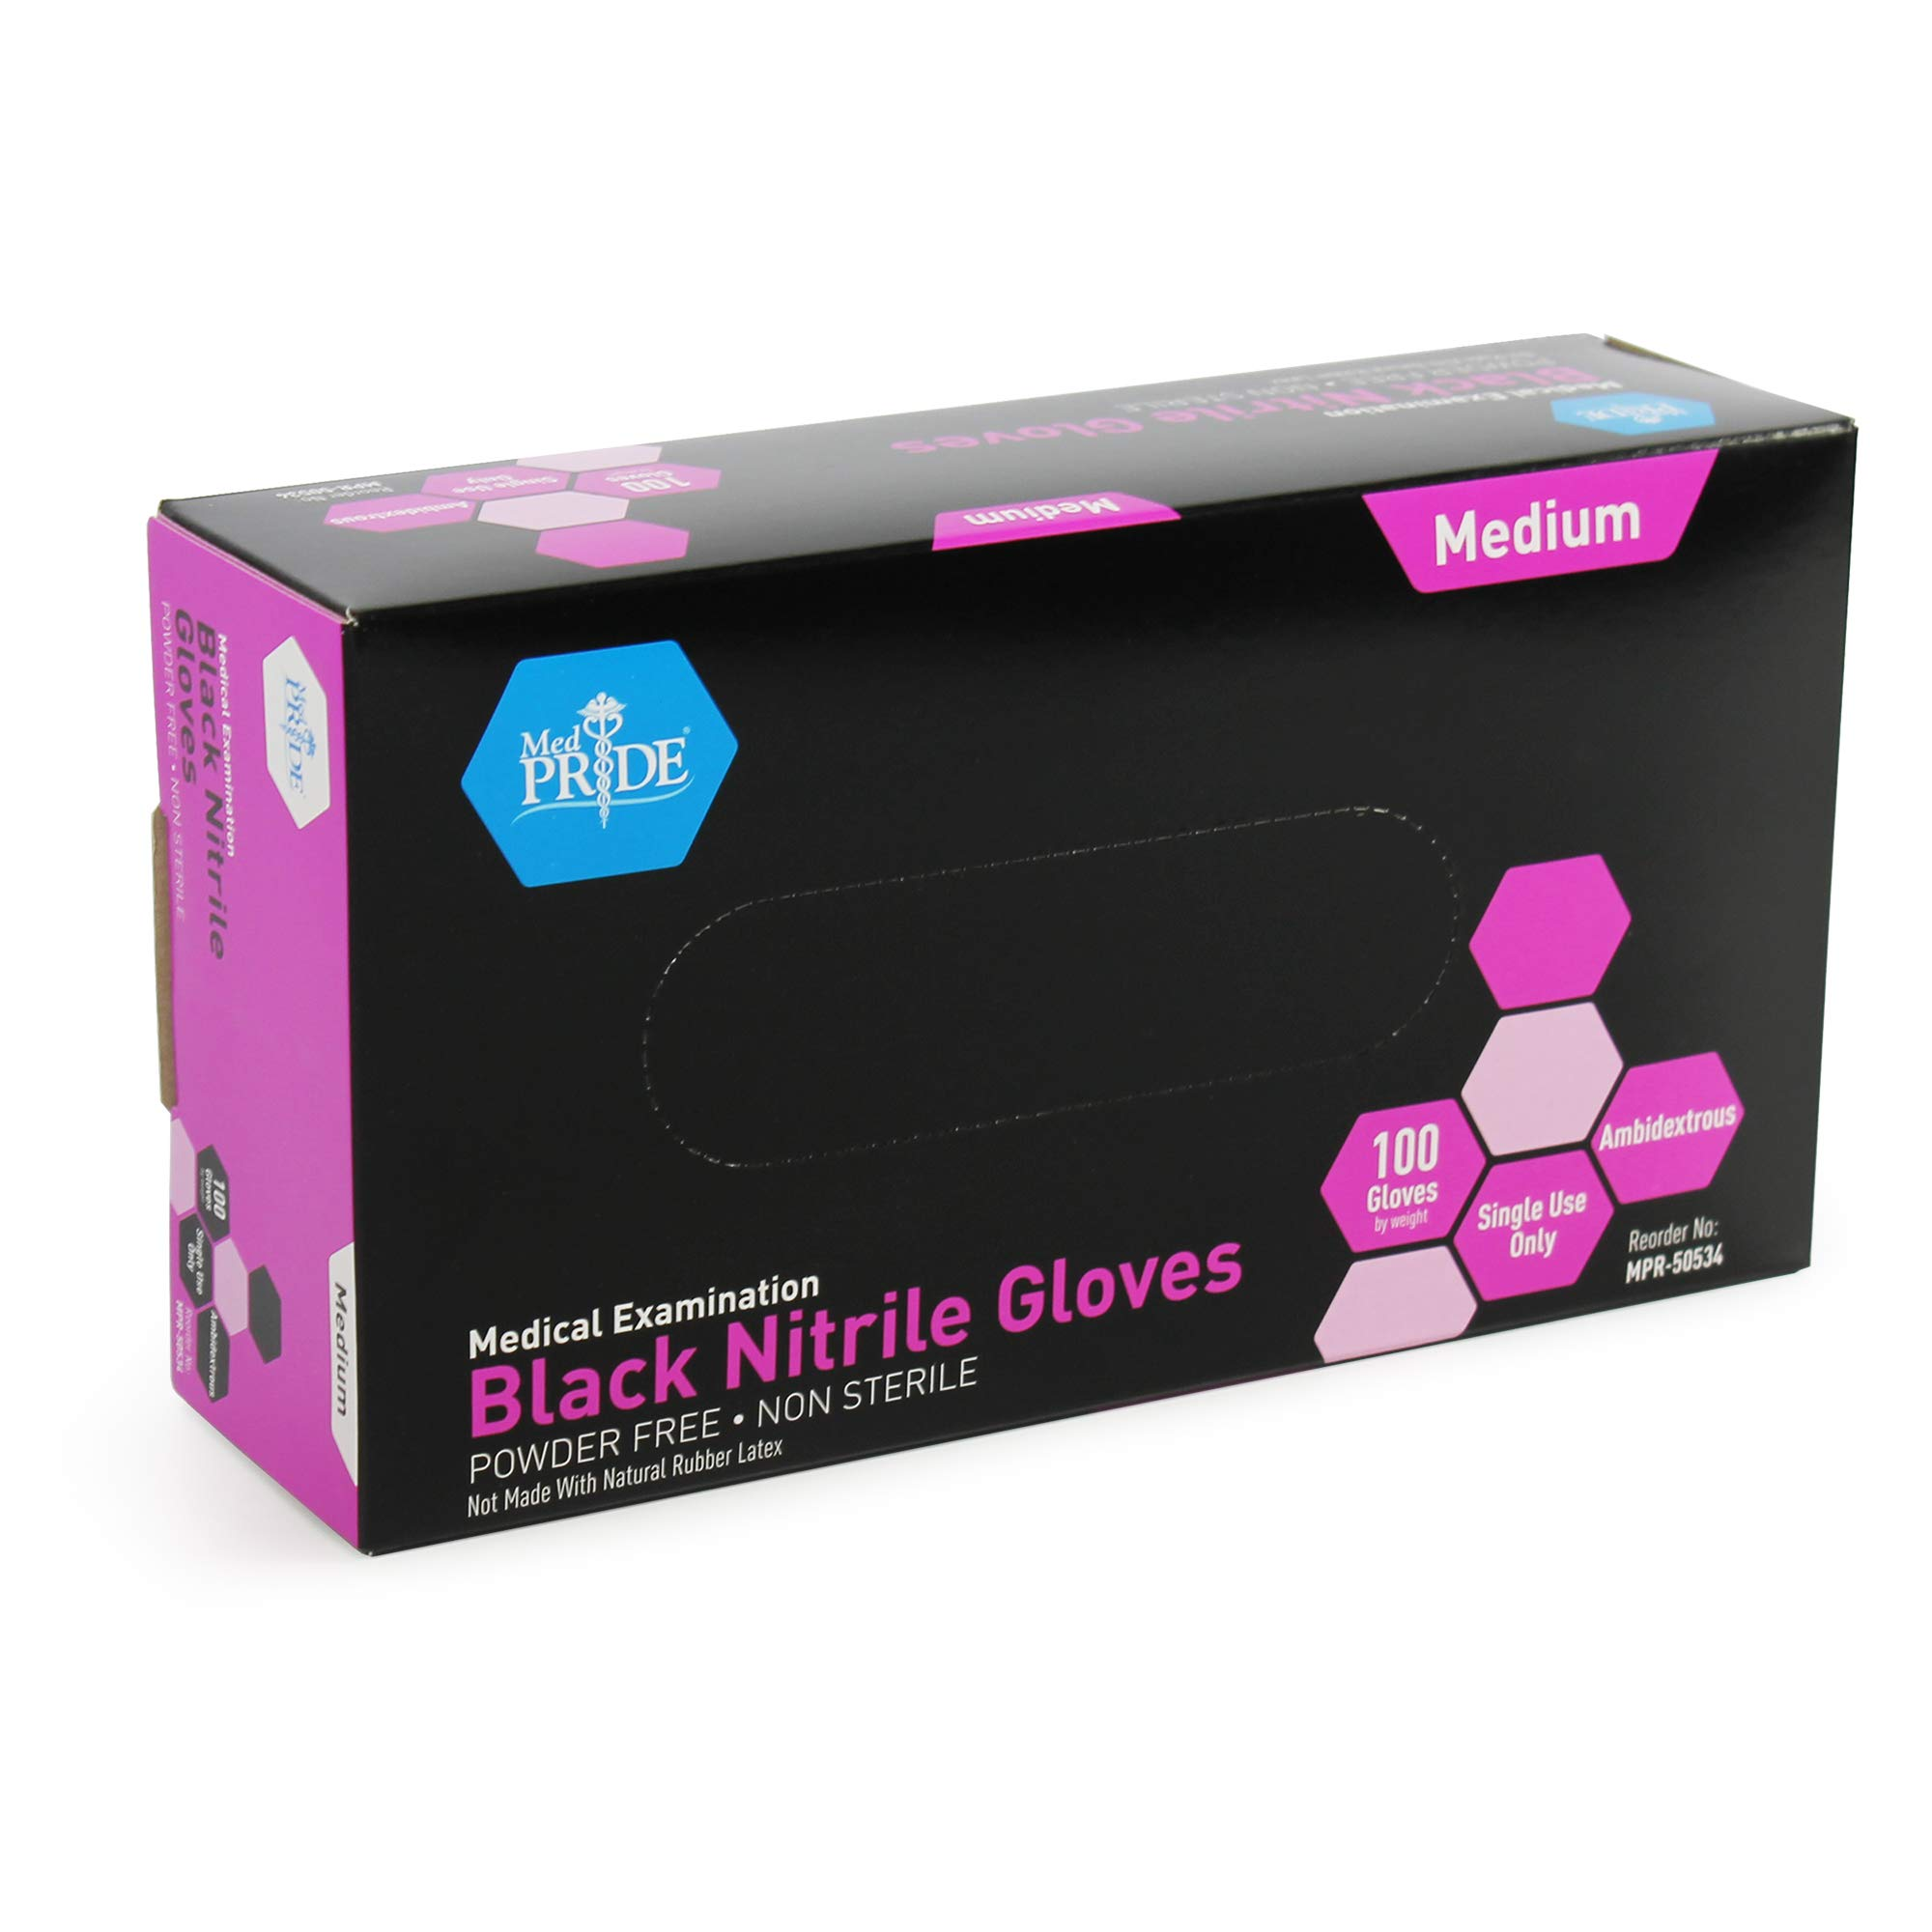 Medpride Medical Examination Nitrile Gloves| Medium Box of 100| Black, Latex/Powder-Free, Non-Sterile Gloves| Professional Grade for Hospitals, Law Enforcement, Food Vendors, Tattoo Artists, Home Use